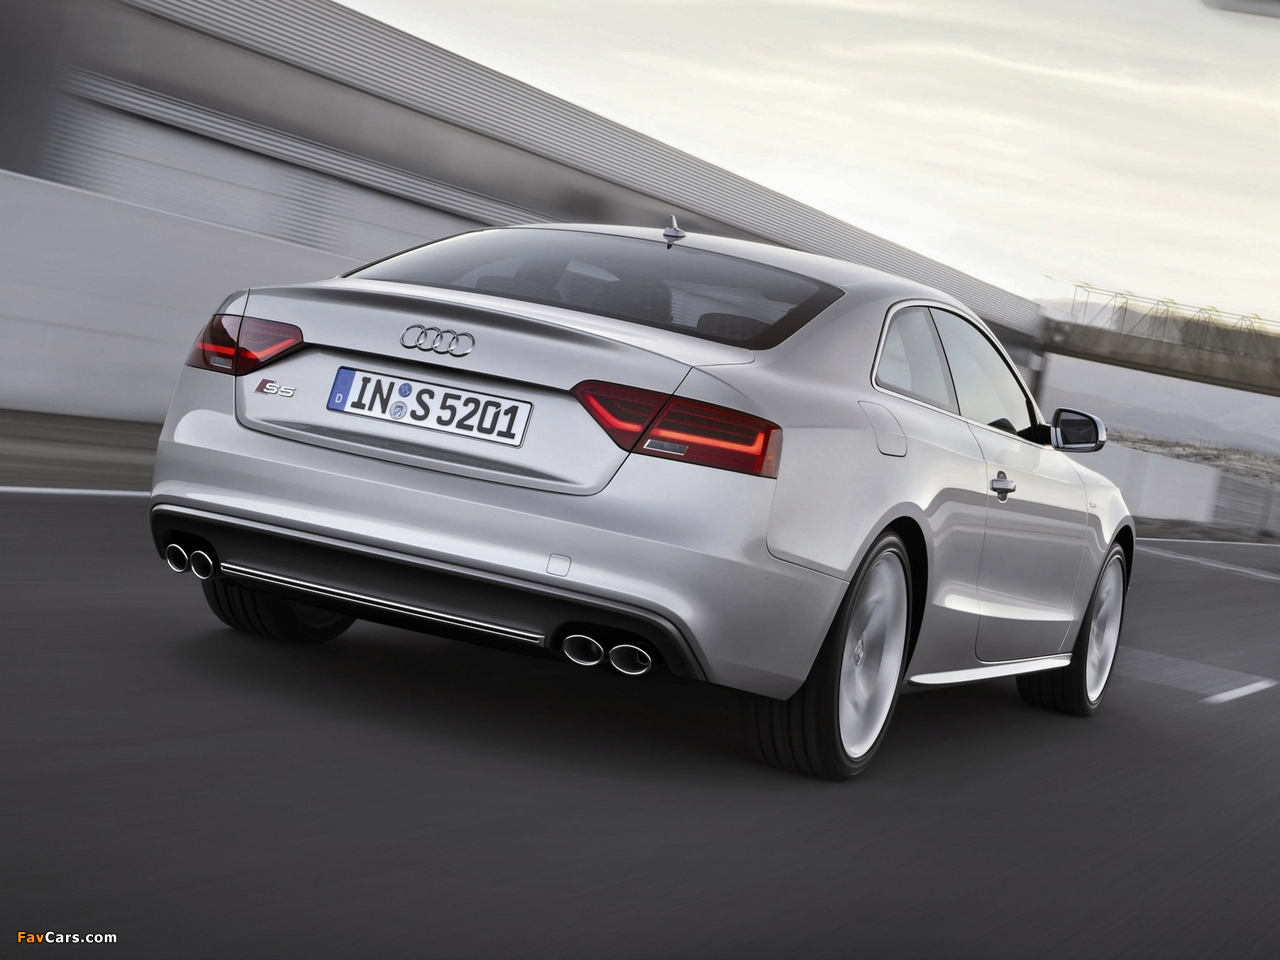 Audi S5 Coupe 2011 Images 1280x960